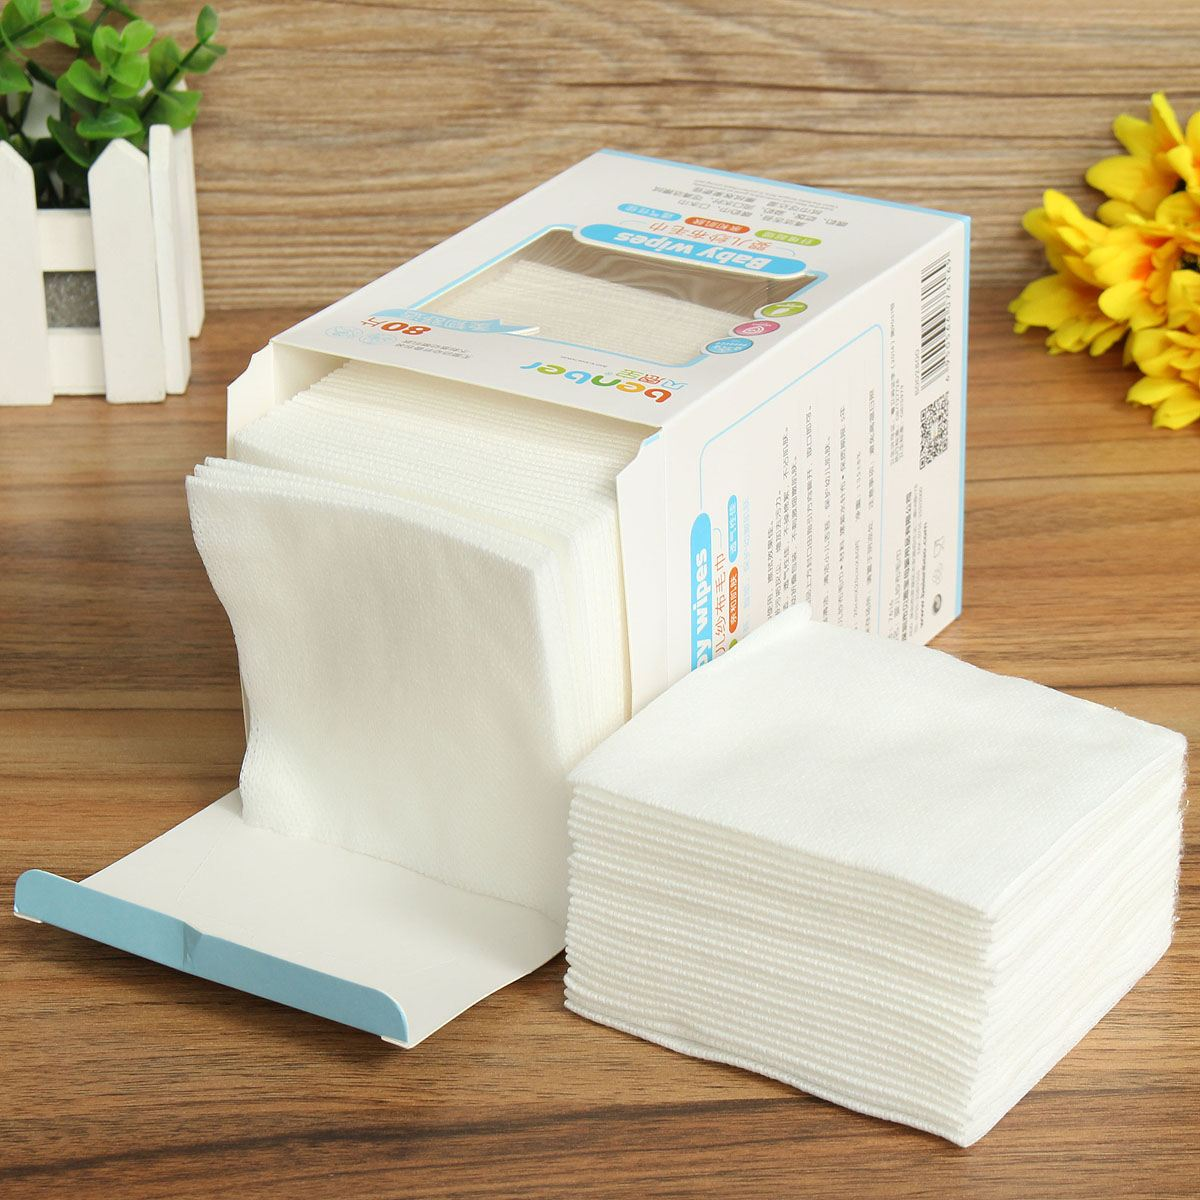 80pcs/box Rayon Disposable Handkerchiefs Baby Gauze Care Product New Born Baby Wipes White Cotton Towel